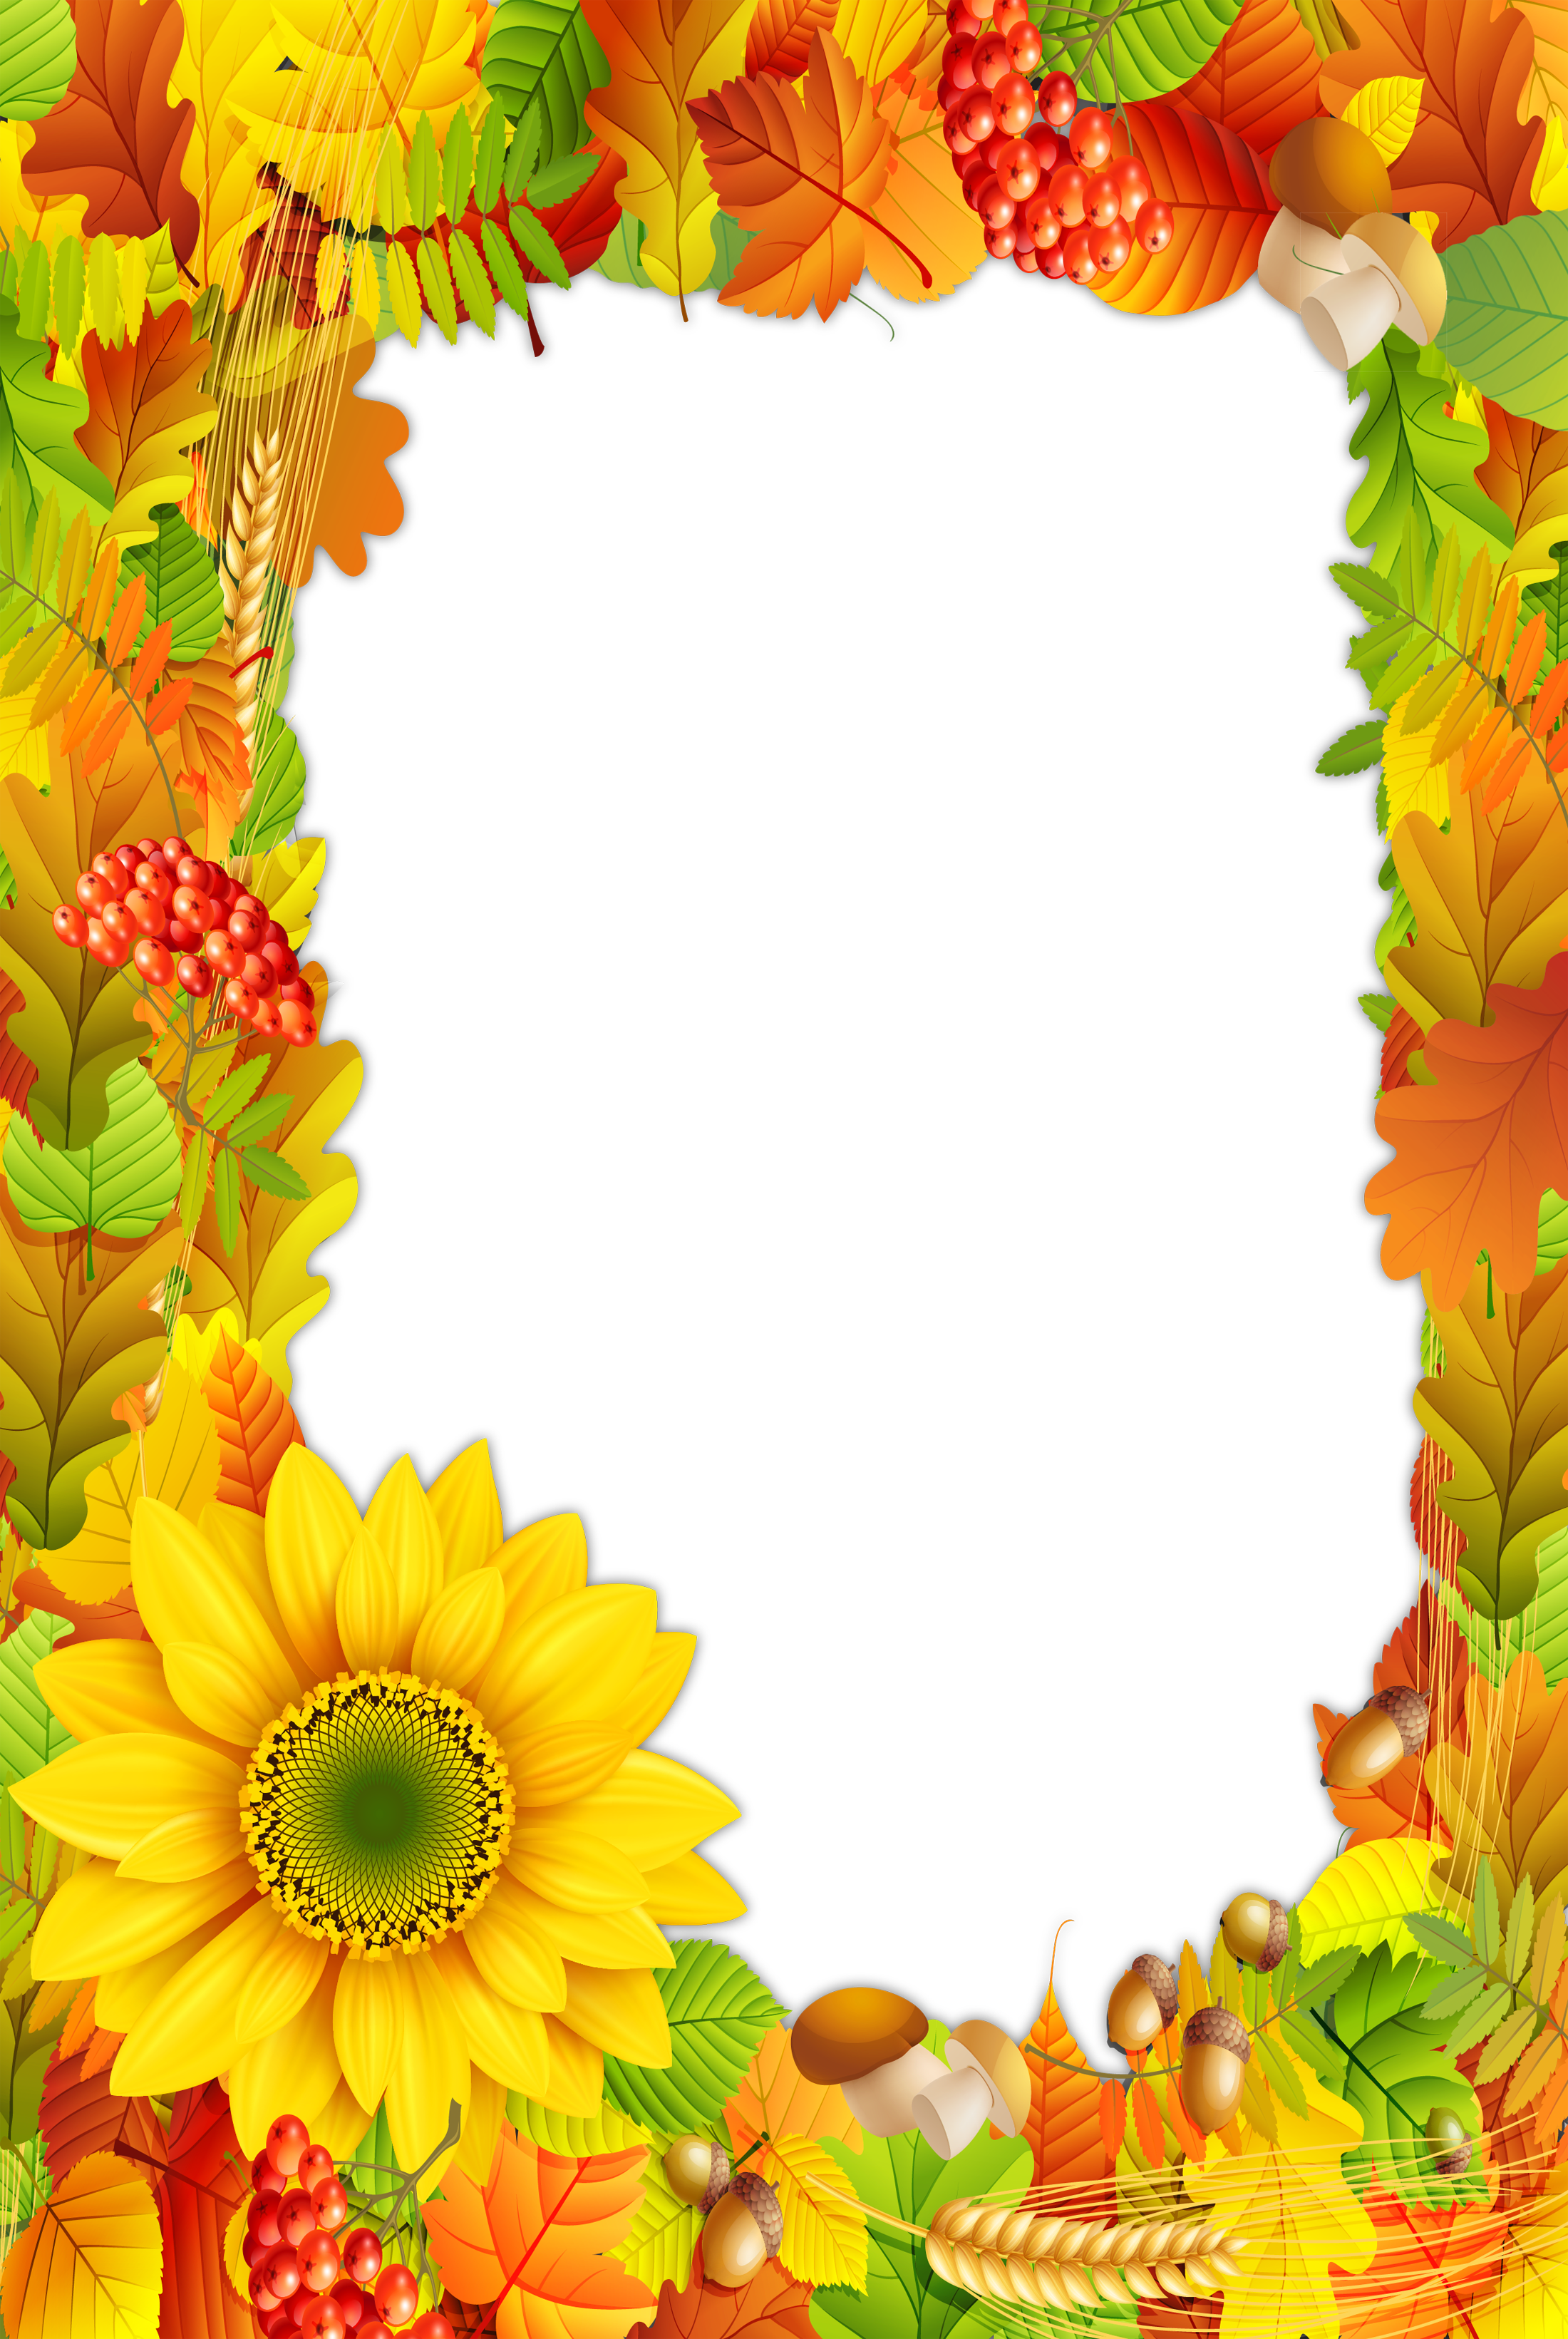 Colors photo gallery yopriceville. Fall frame png